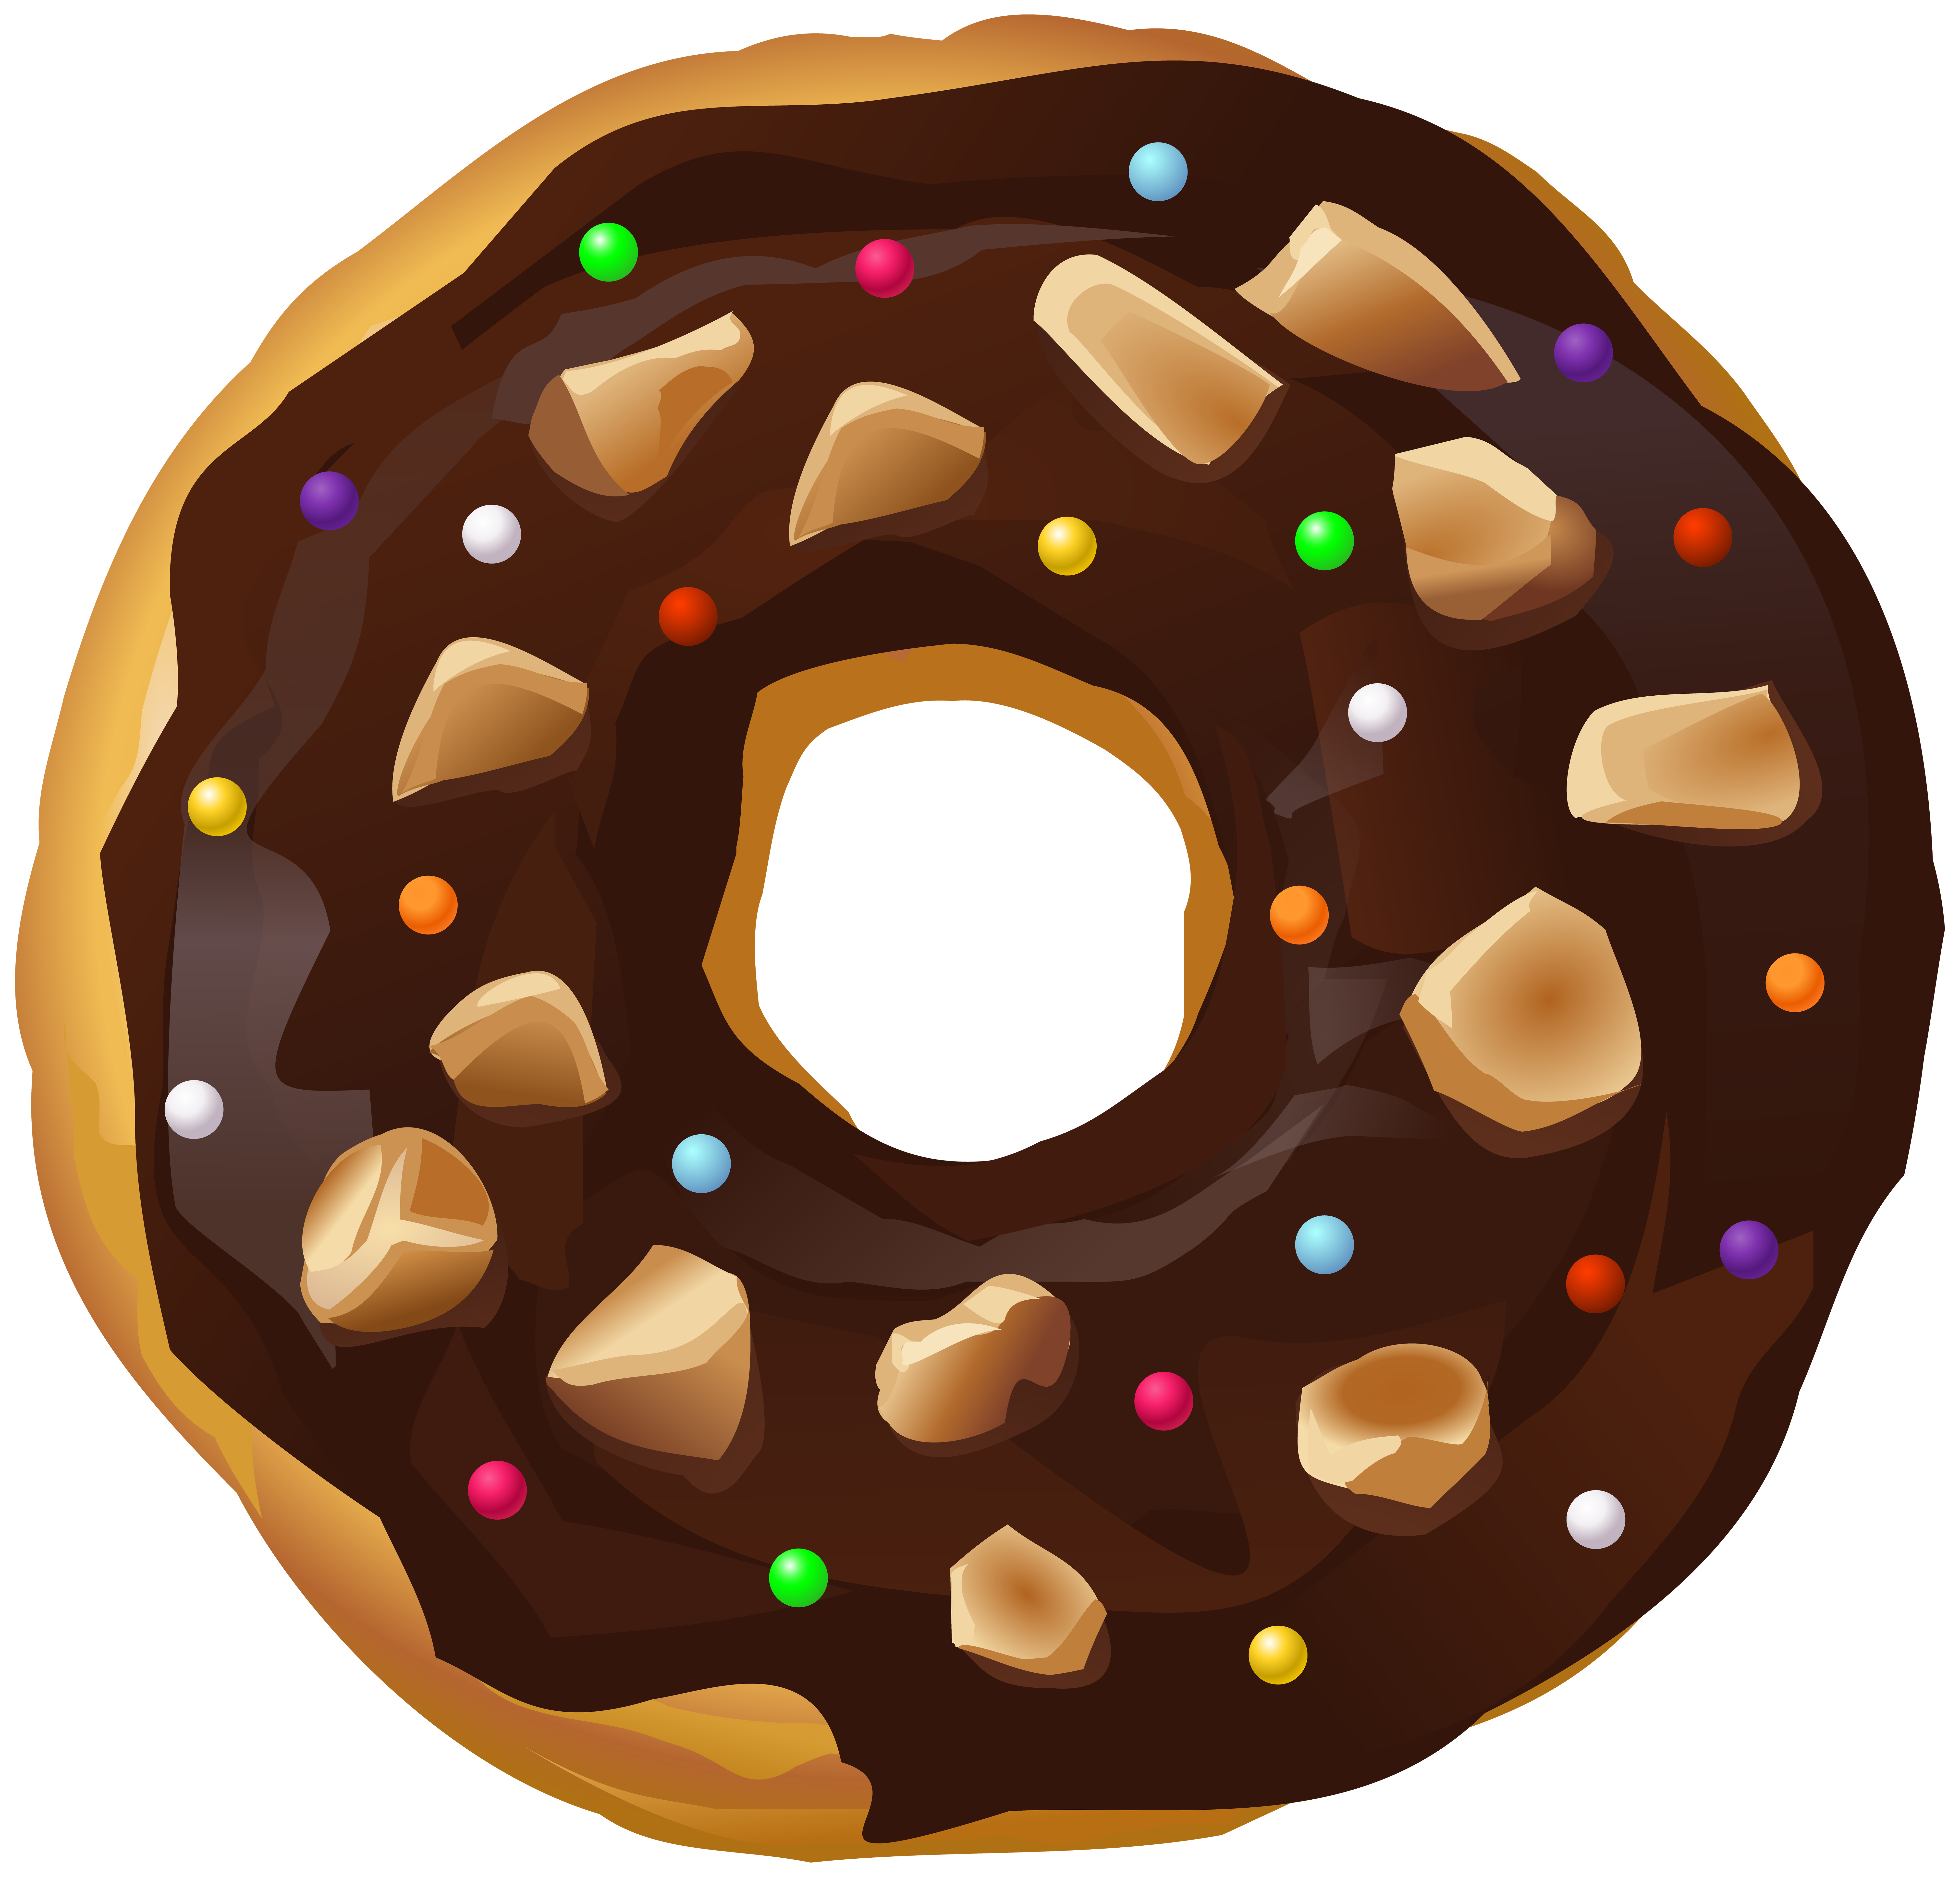 Chocolate Donut Transparent PNG Clip Art Image.